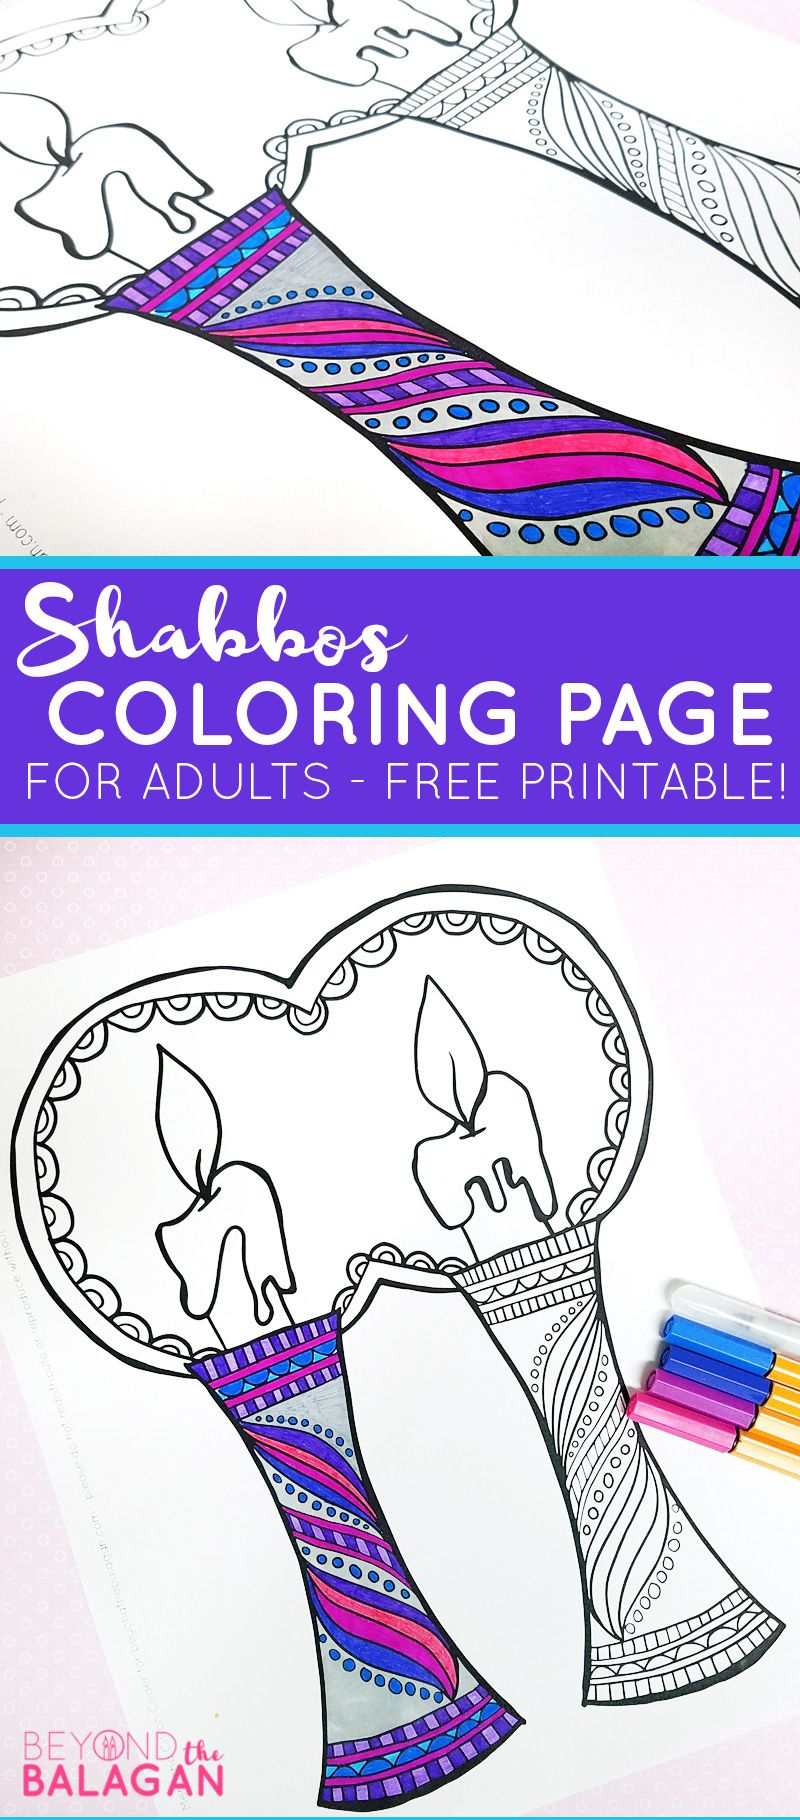 Shabbat Coloring Page For Adults Coloring Pages Adult Coloring